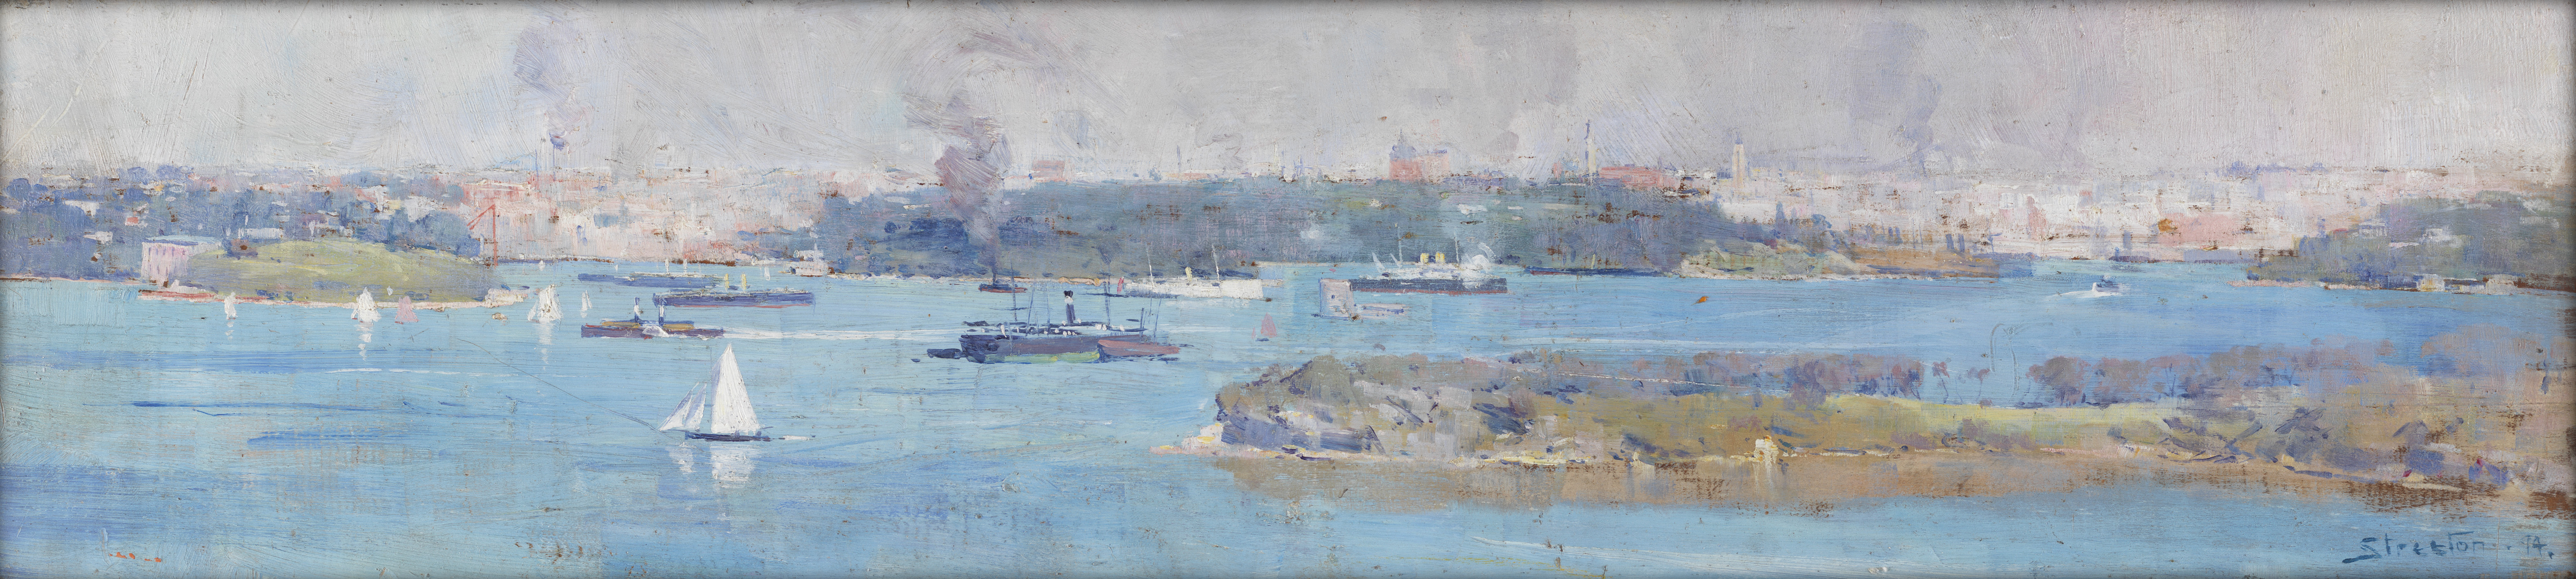 painting: Panoramic view of Sydney Harbour and the city skyline, by Arthur Streeton in 1894